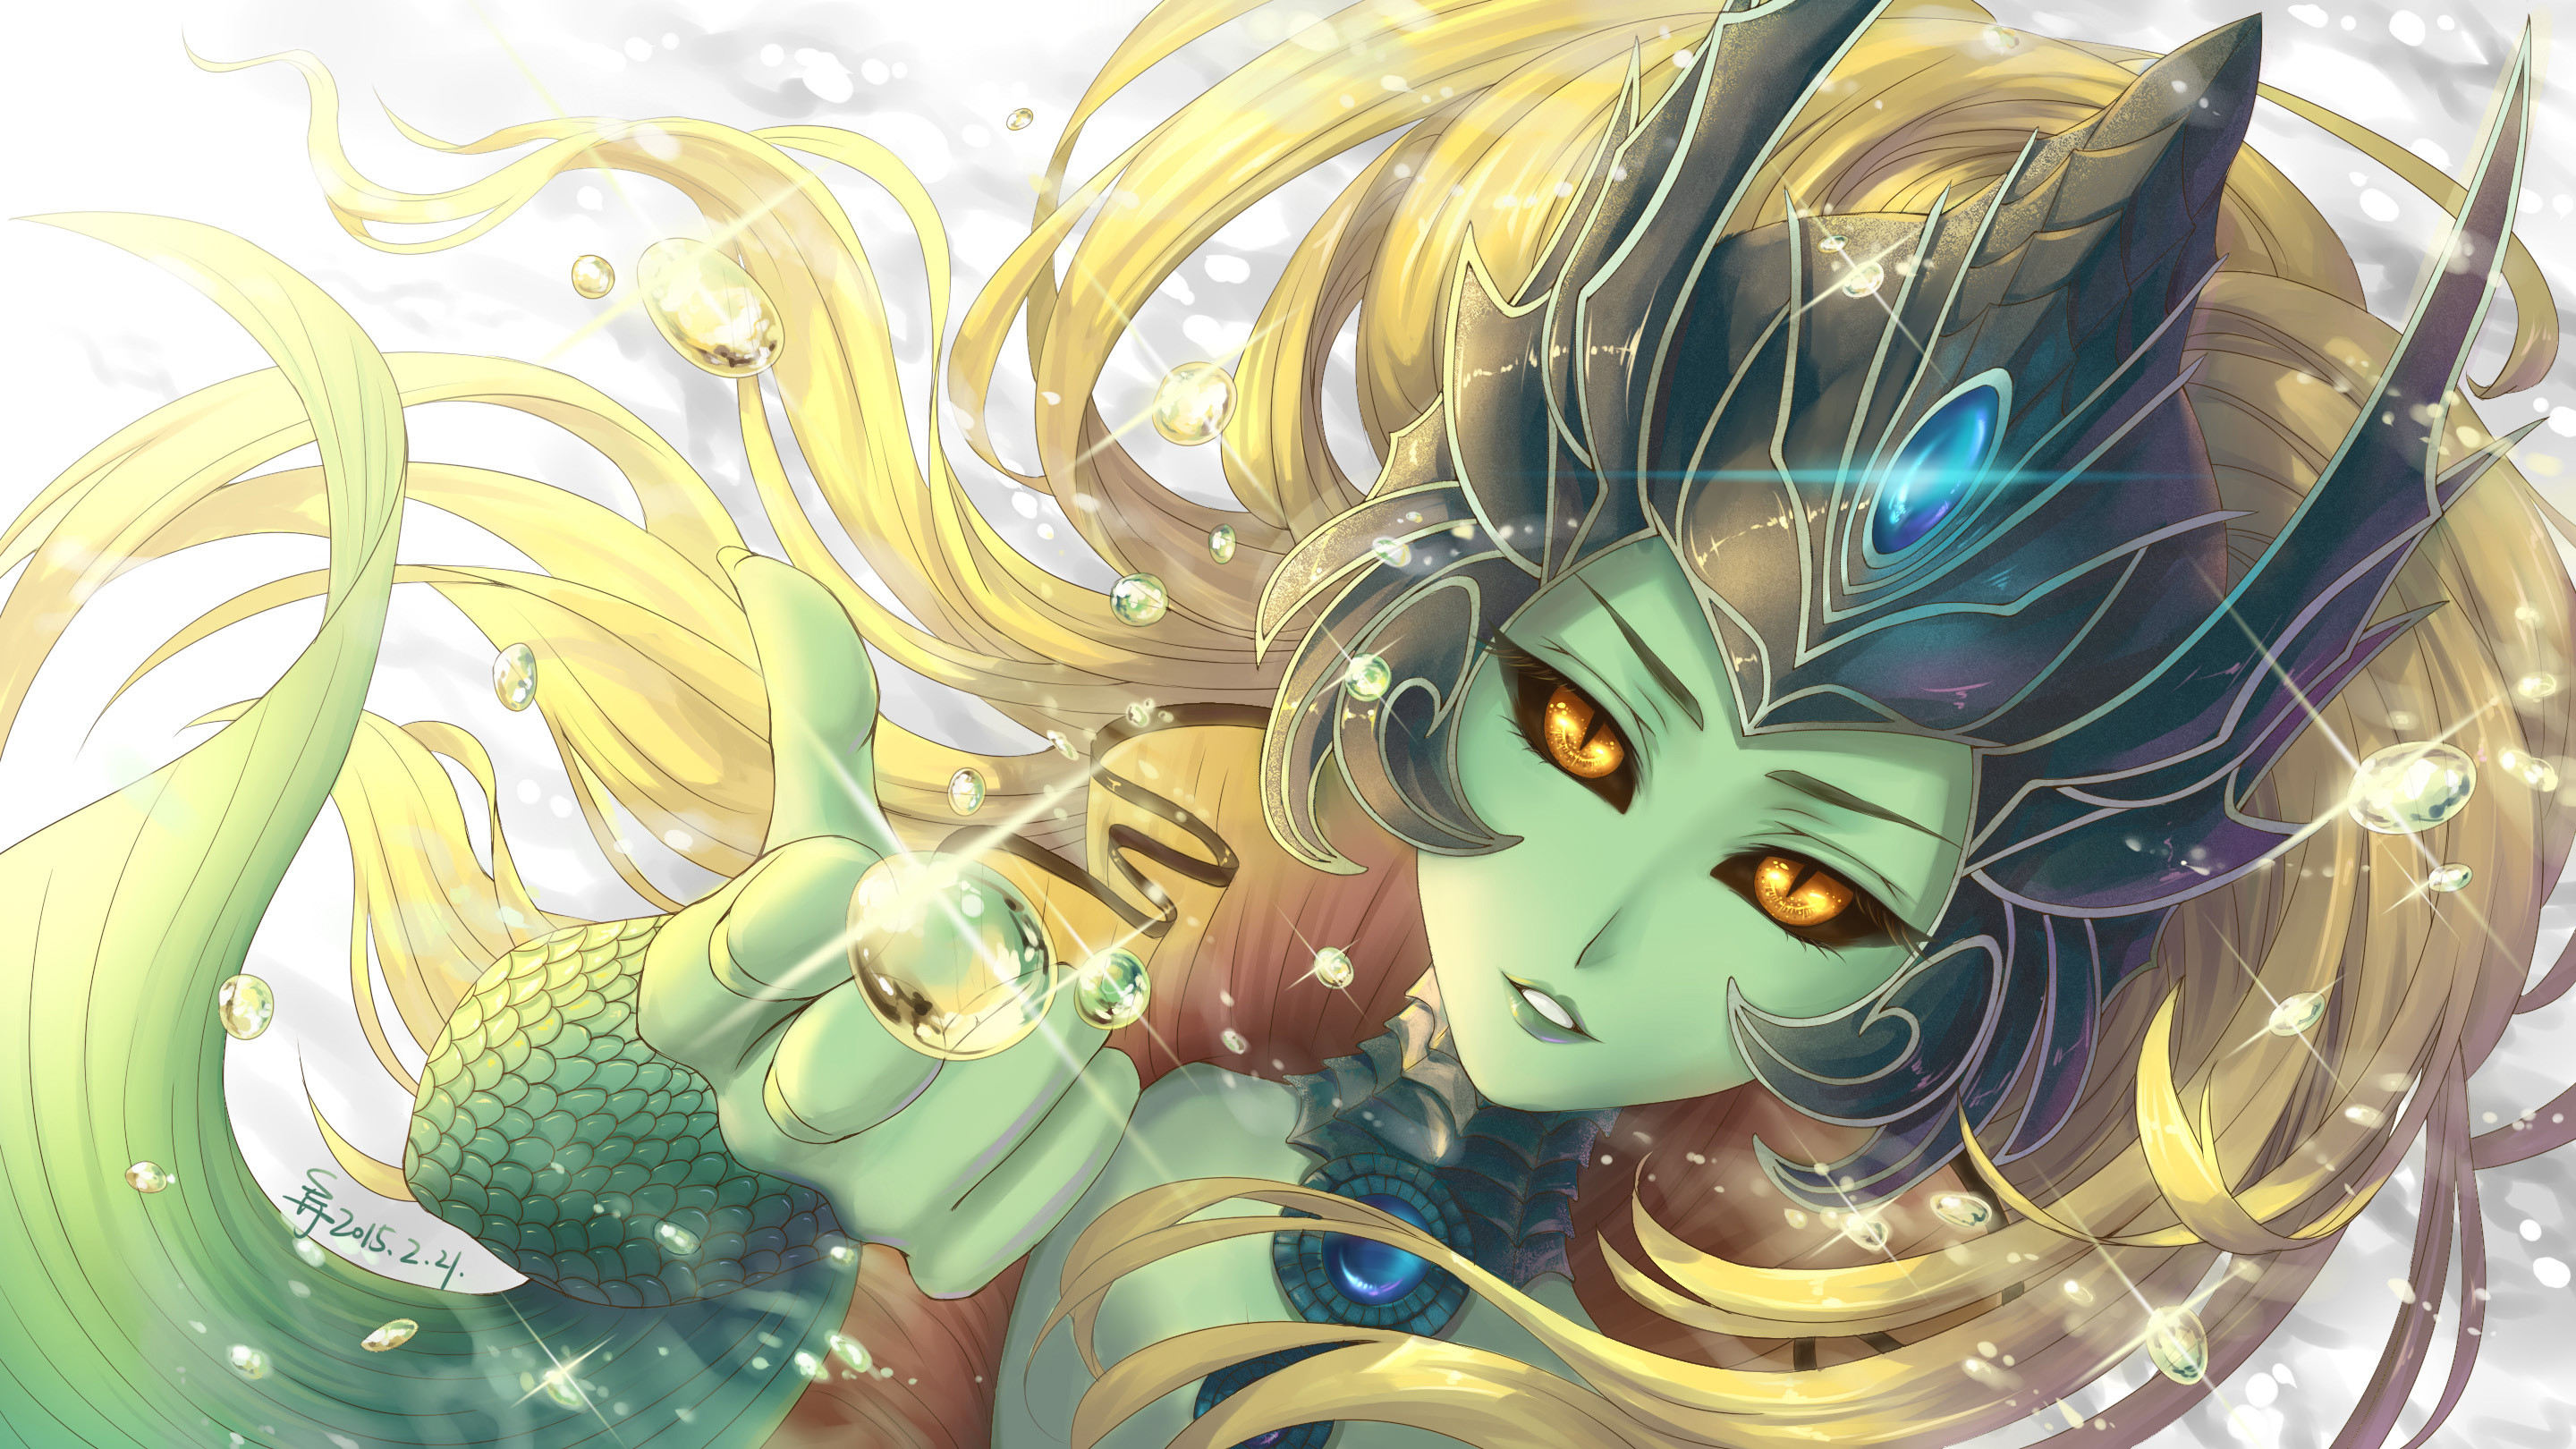 2880x1620 Nami by Suiiii HD Wallpaper Background Fan Art Artwork League of Legends lol